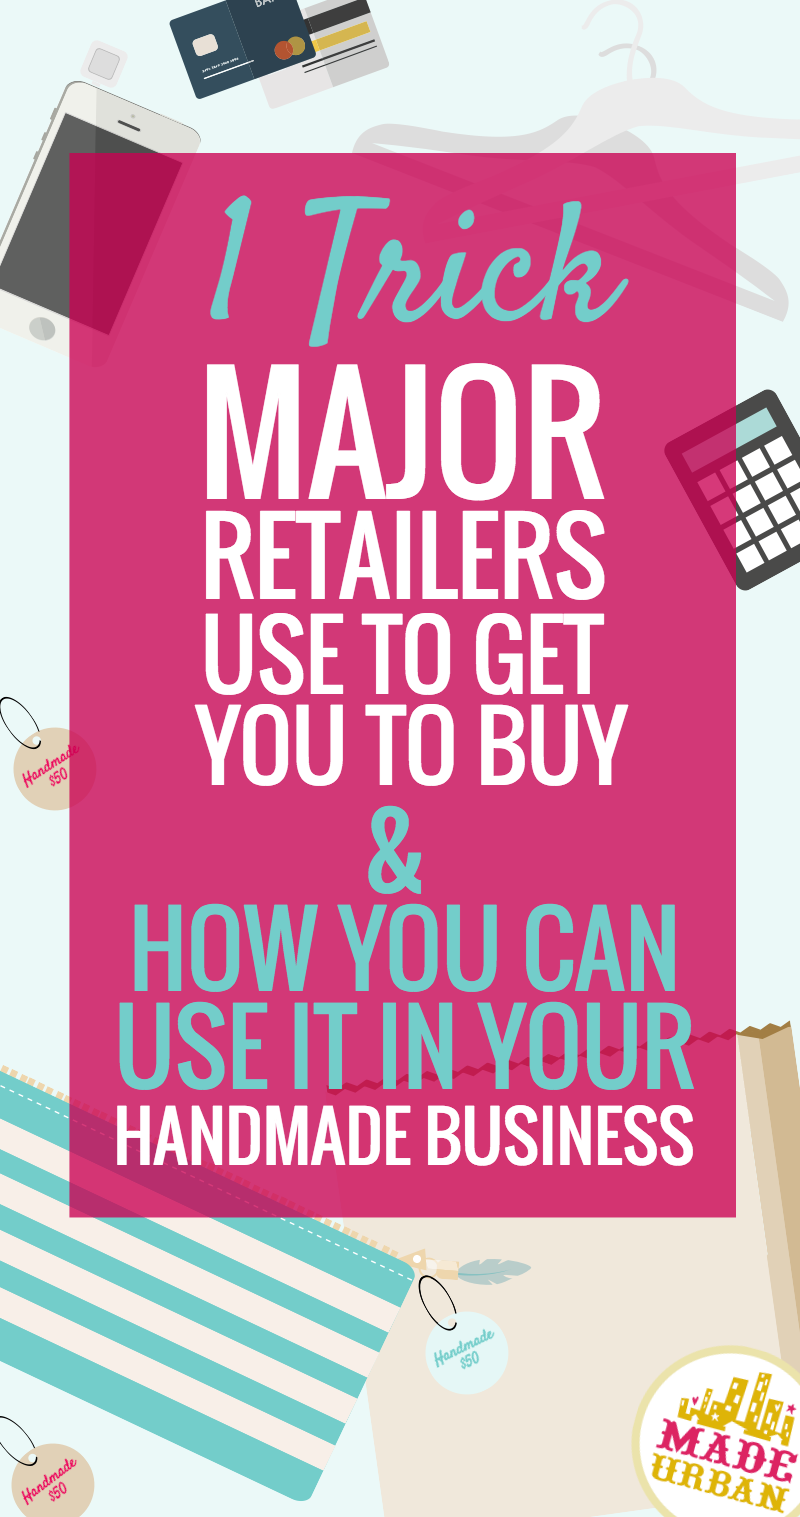 Sell More Handmade With This 1 Trick Retailers Use Business Need